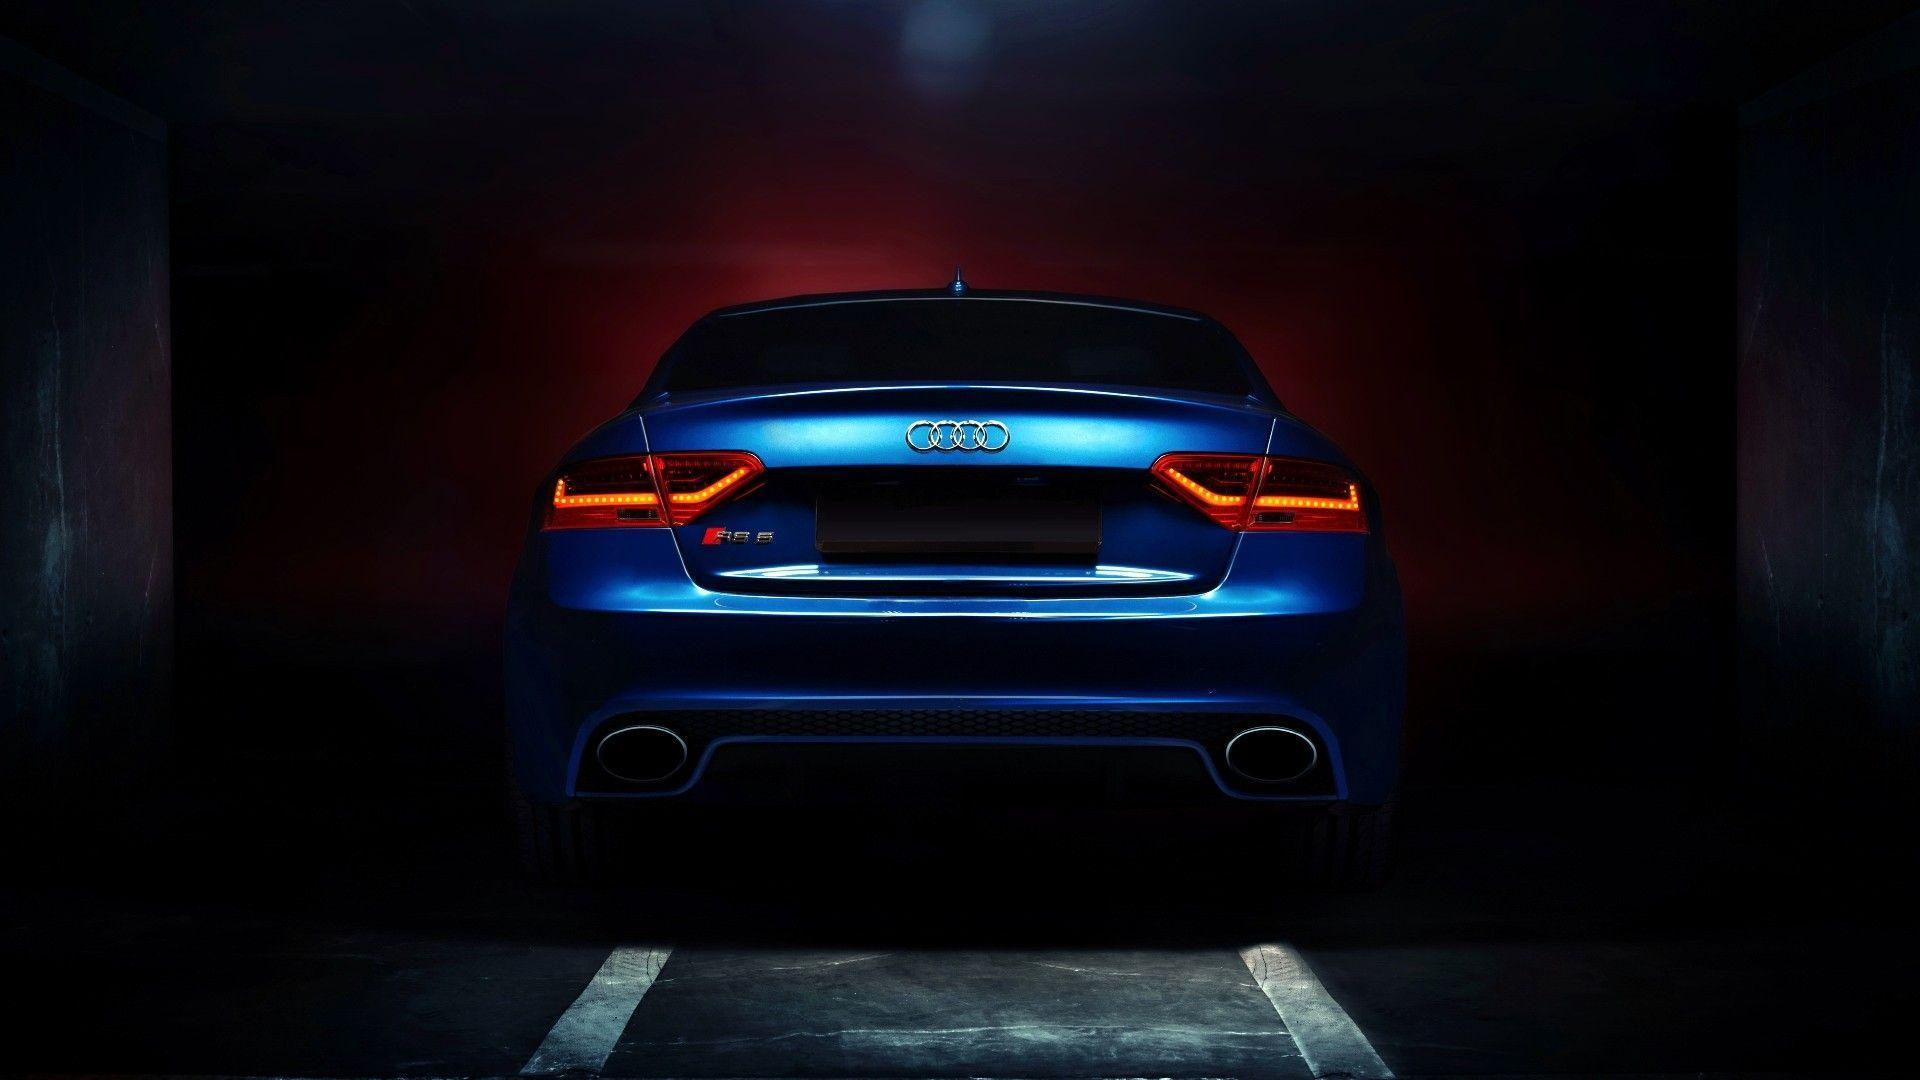 Audi RS5 Full HD Wallpaper and Background Image | 1920x1080 | ID:427418